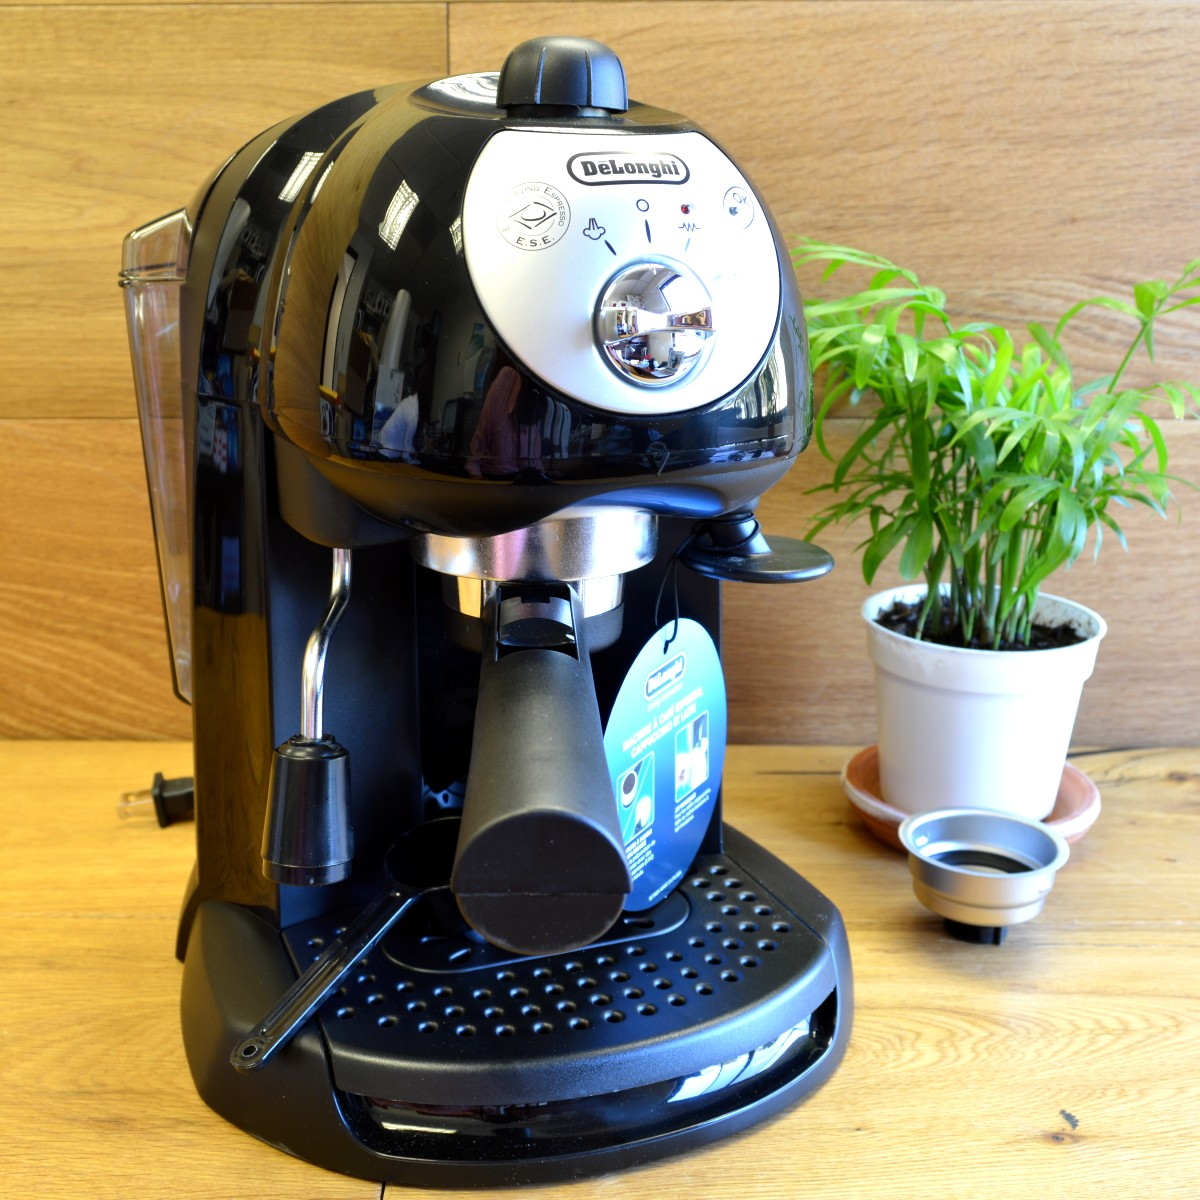 Delonghi Coffee Maker In Ksa : Review: BAR32 - A Delonghi Espresso Maker With Quality